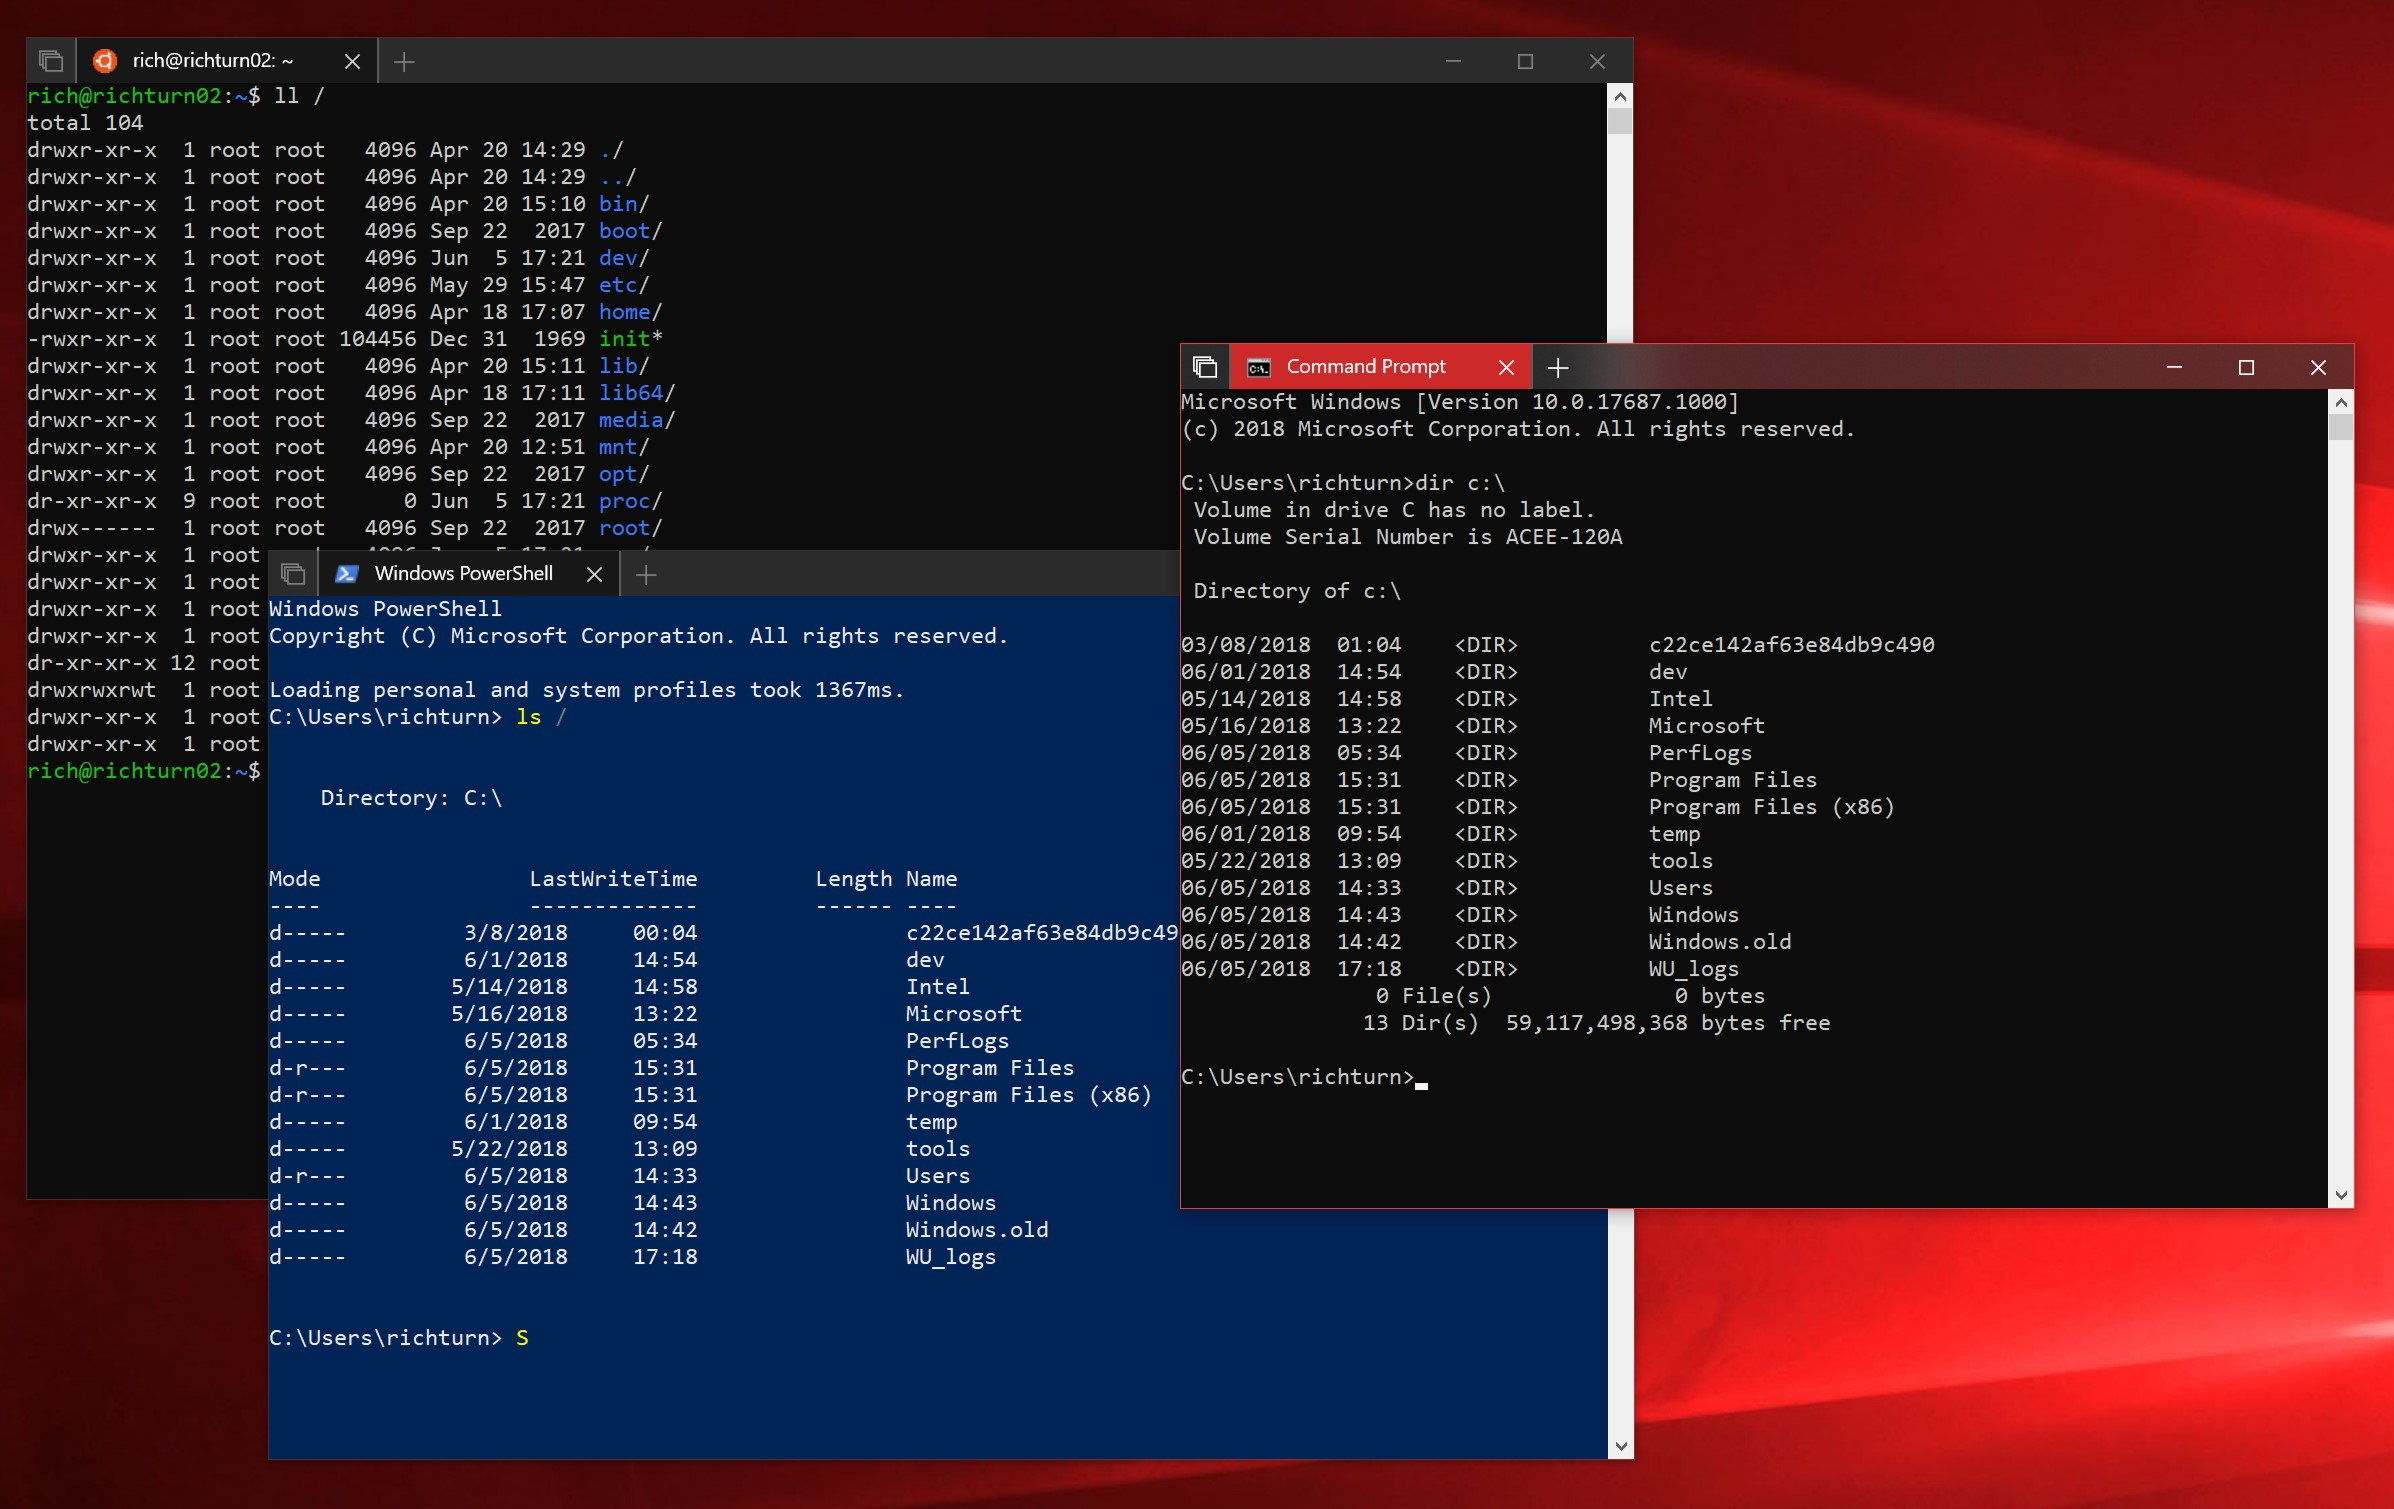 Cmd, PowerShell, and Ubuntu Linux on WSL running attached to independent Console instances